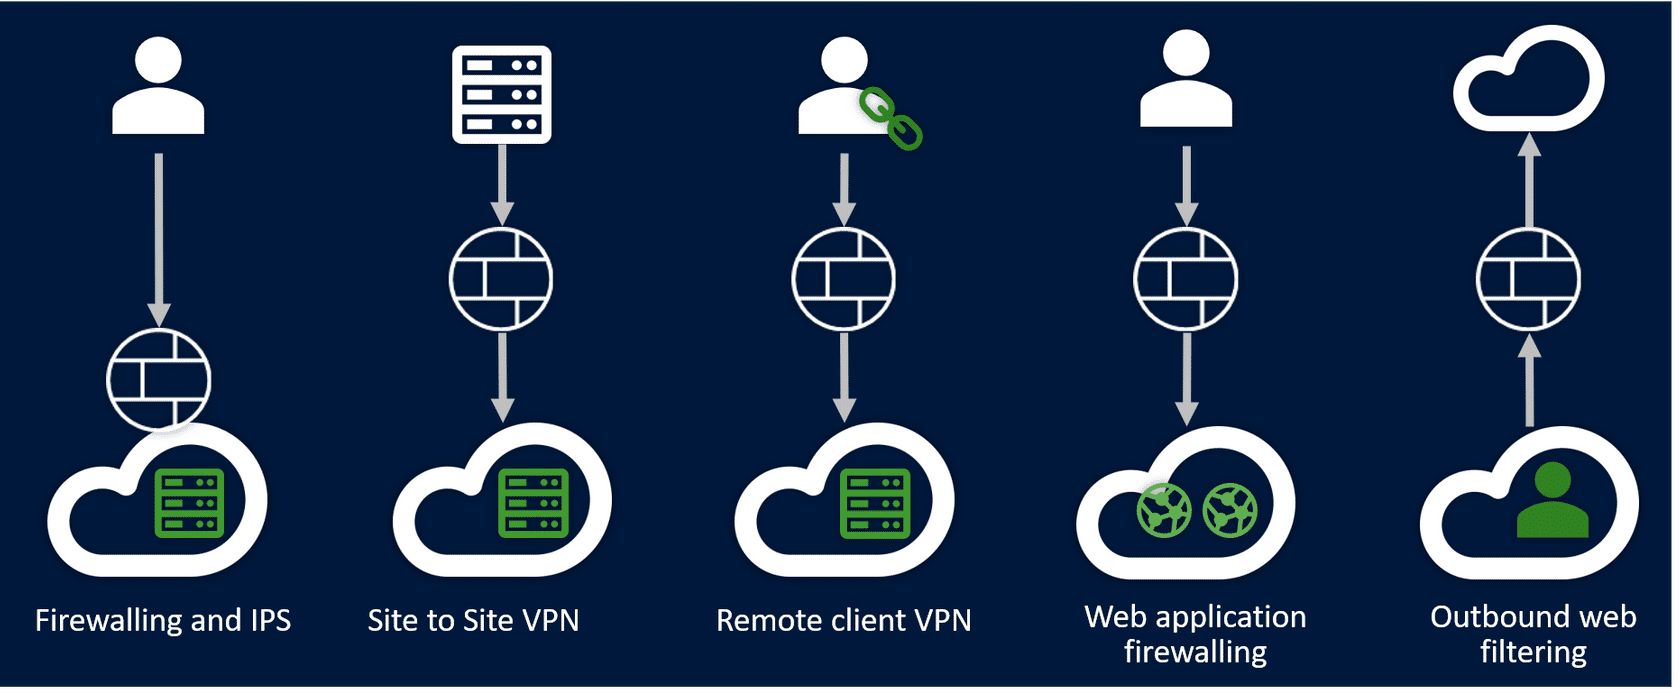 A Sophos Firewall expands the VPN options by offering SSL VPN and the option to enable RED SD WAN capabilities which makes remote connectivity simply and easy to implement.On top of this, our Sophos Firewall addresses the need for content filtering both inbound and outbound web traffic through the Web Application Firewall (WAF) and web protection.